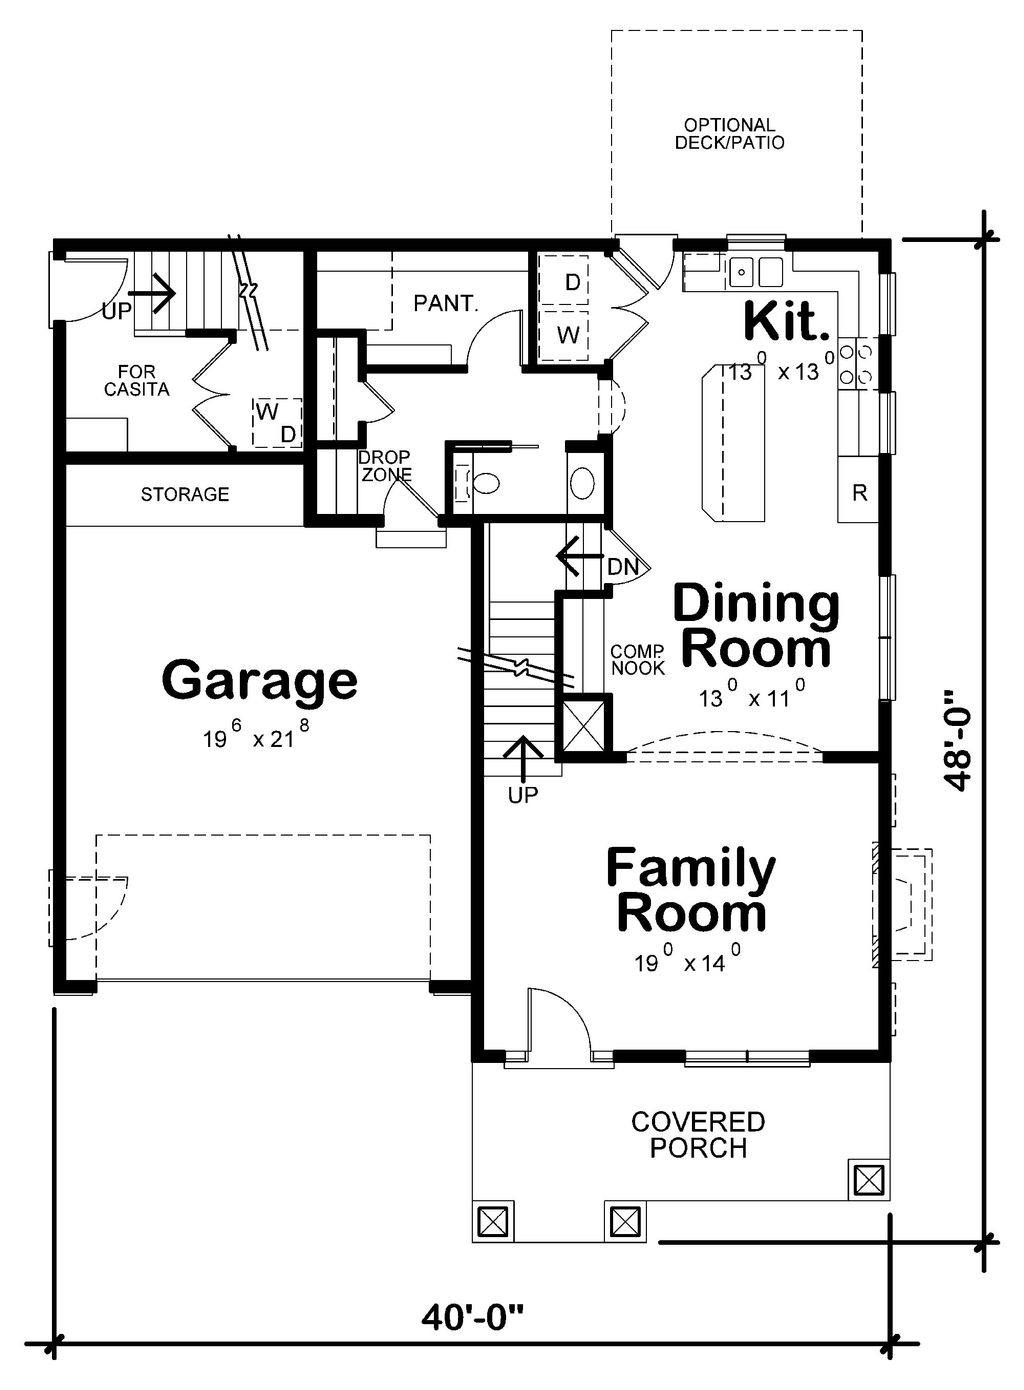 Craftsman Style House Plan - 4 Beds 3.5 Baths 2506 Sq/Ft ... on study zone, color zone, house plans in flood areas, construction zone,